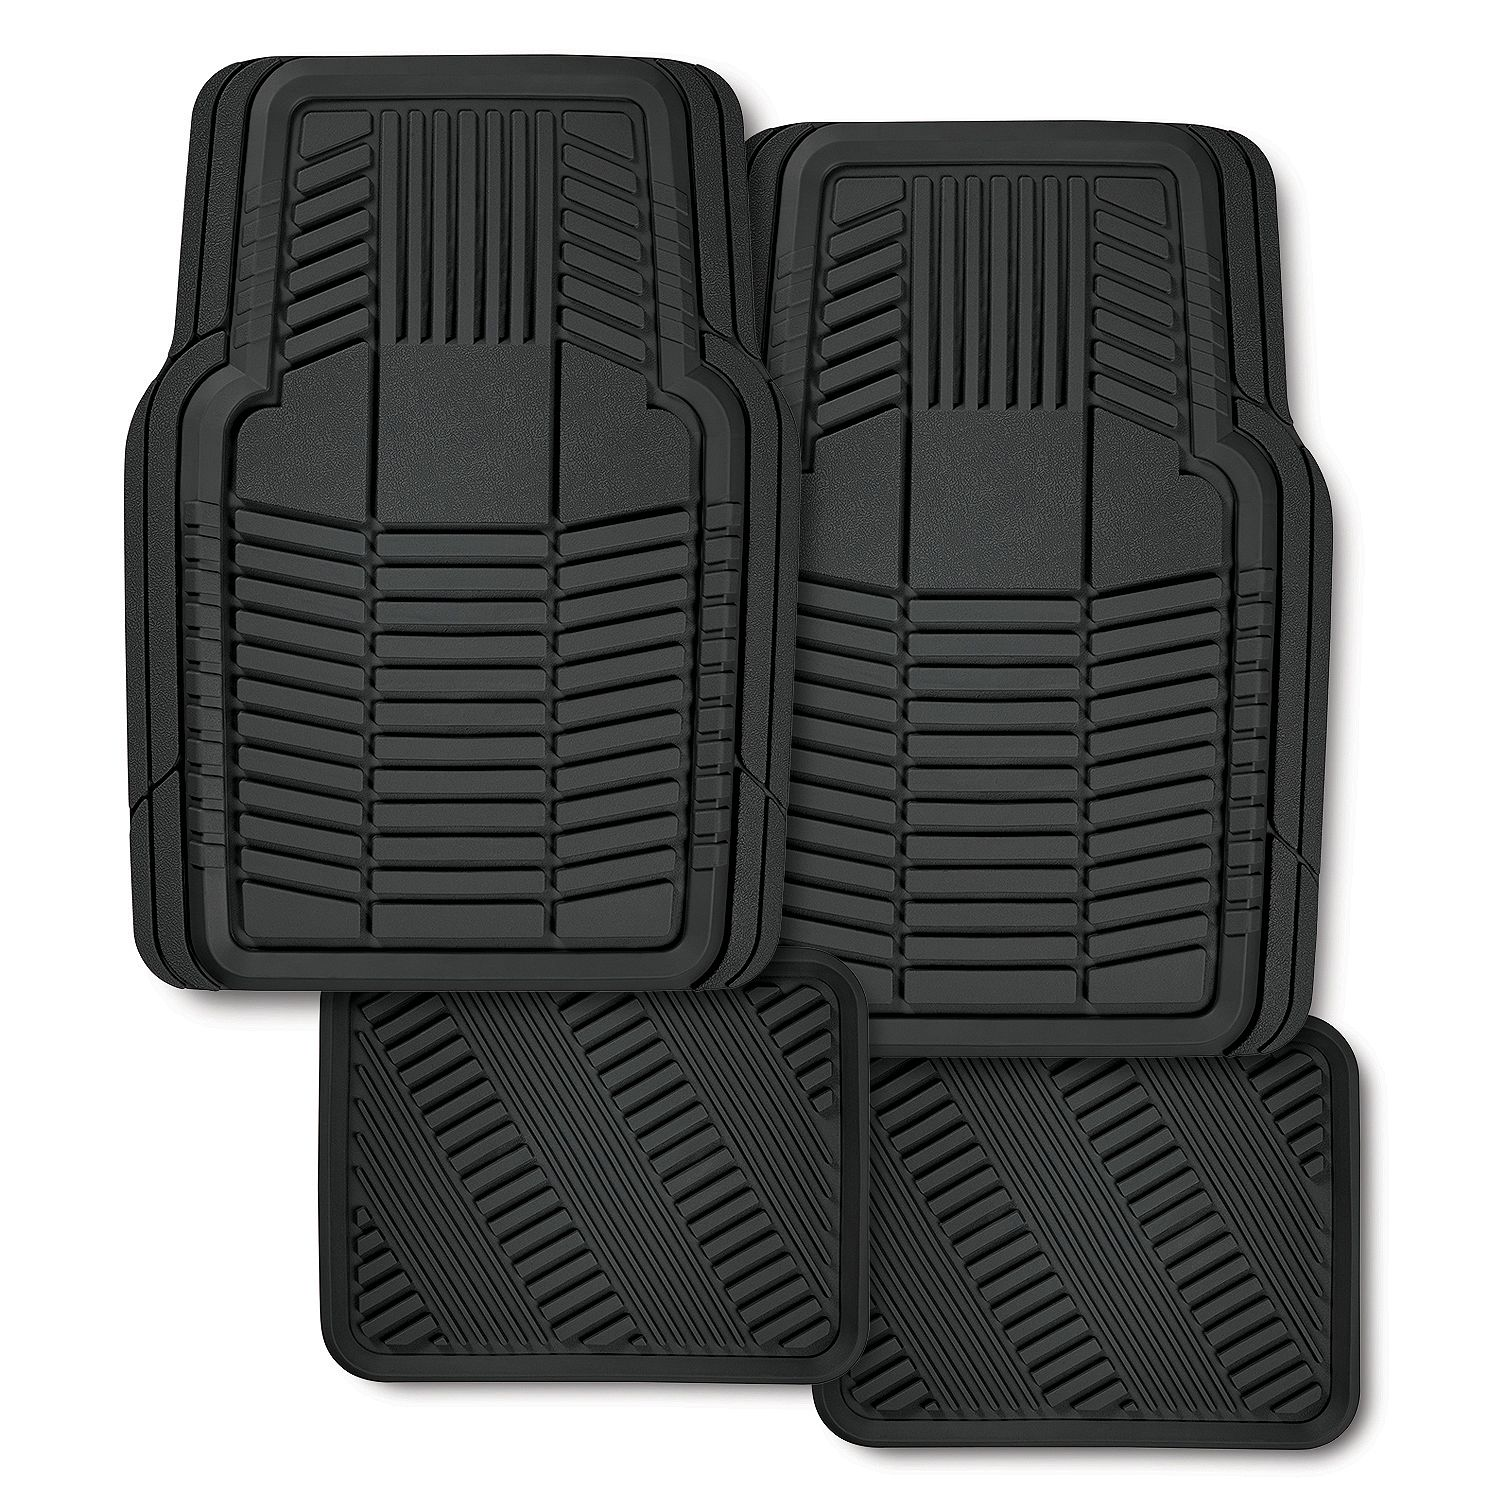 automotive mats lids best mat and floor accessories excellent truck toppers within liners creative plus throughout